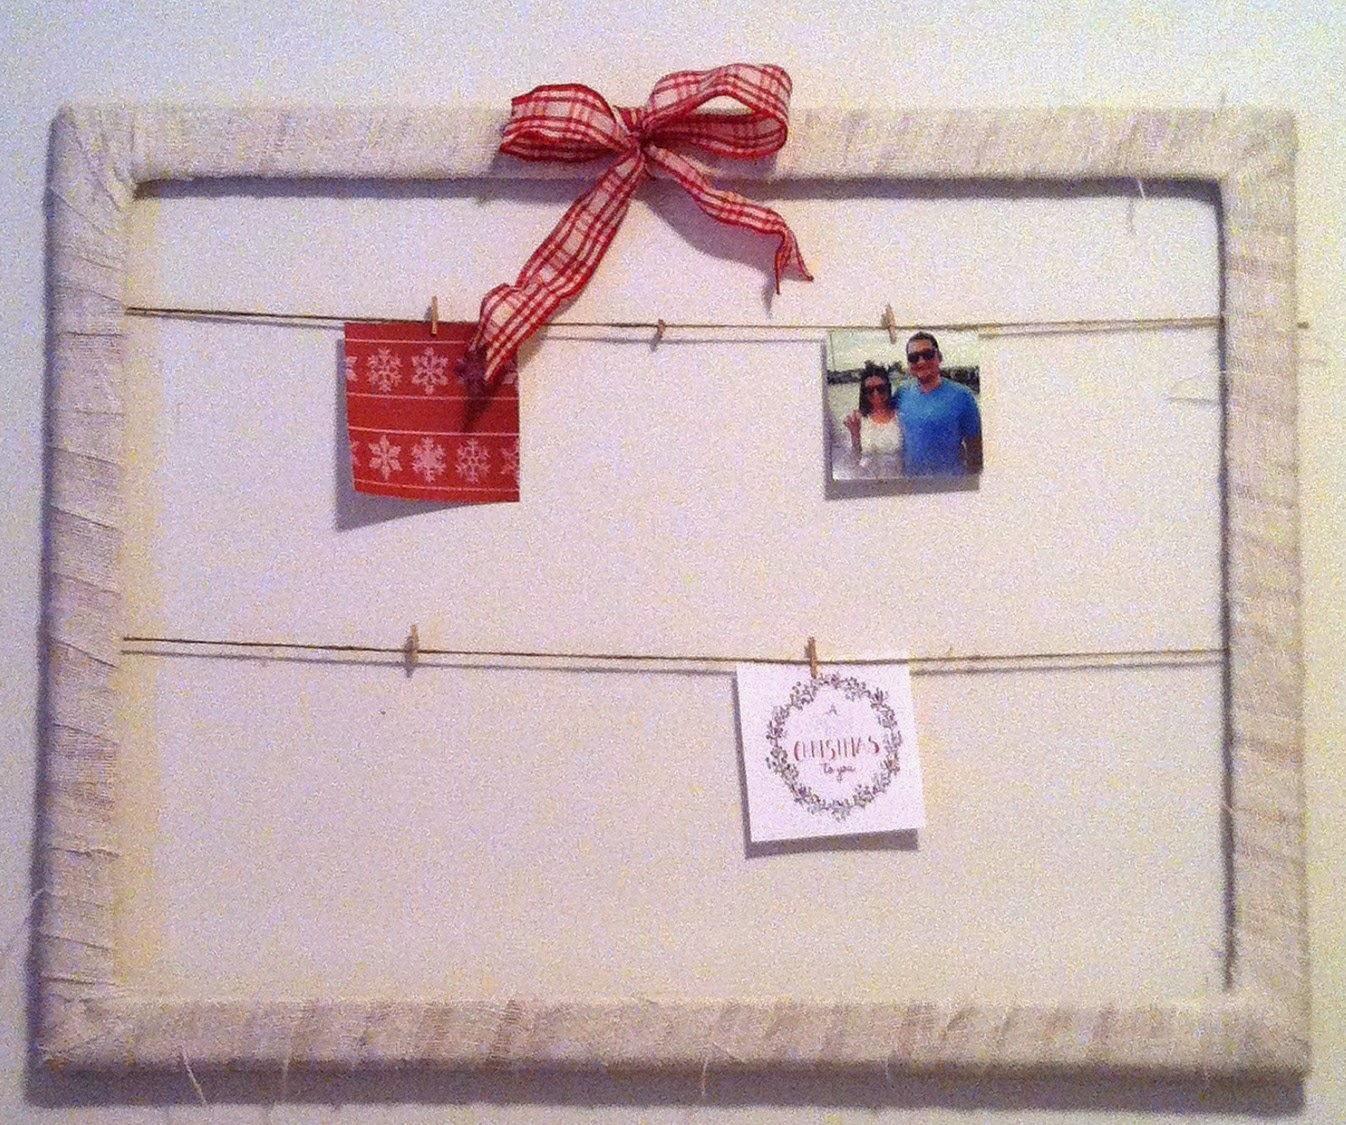 Jessica Stout Design}: DIY Burlap Picture Frame {For the Holidays}